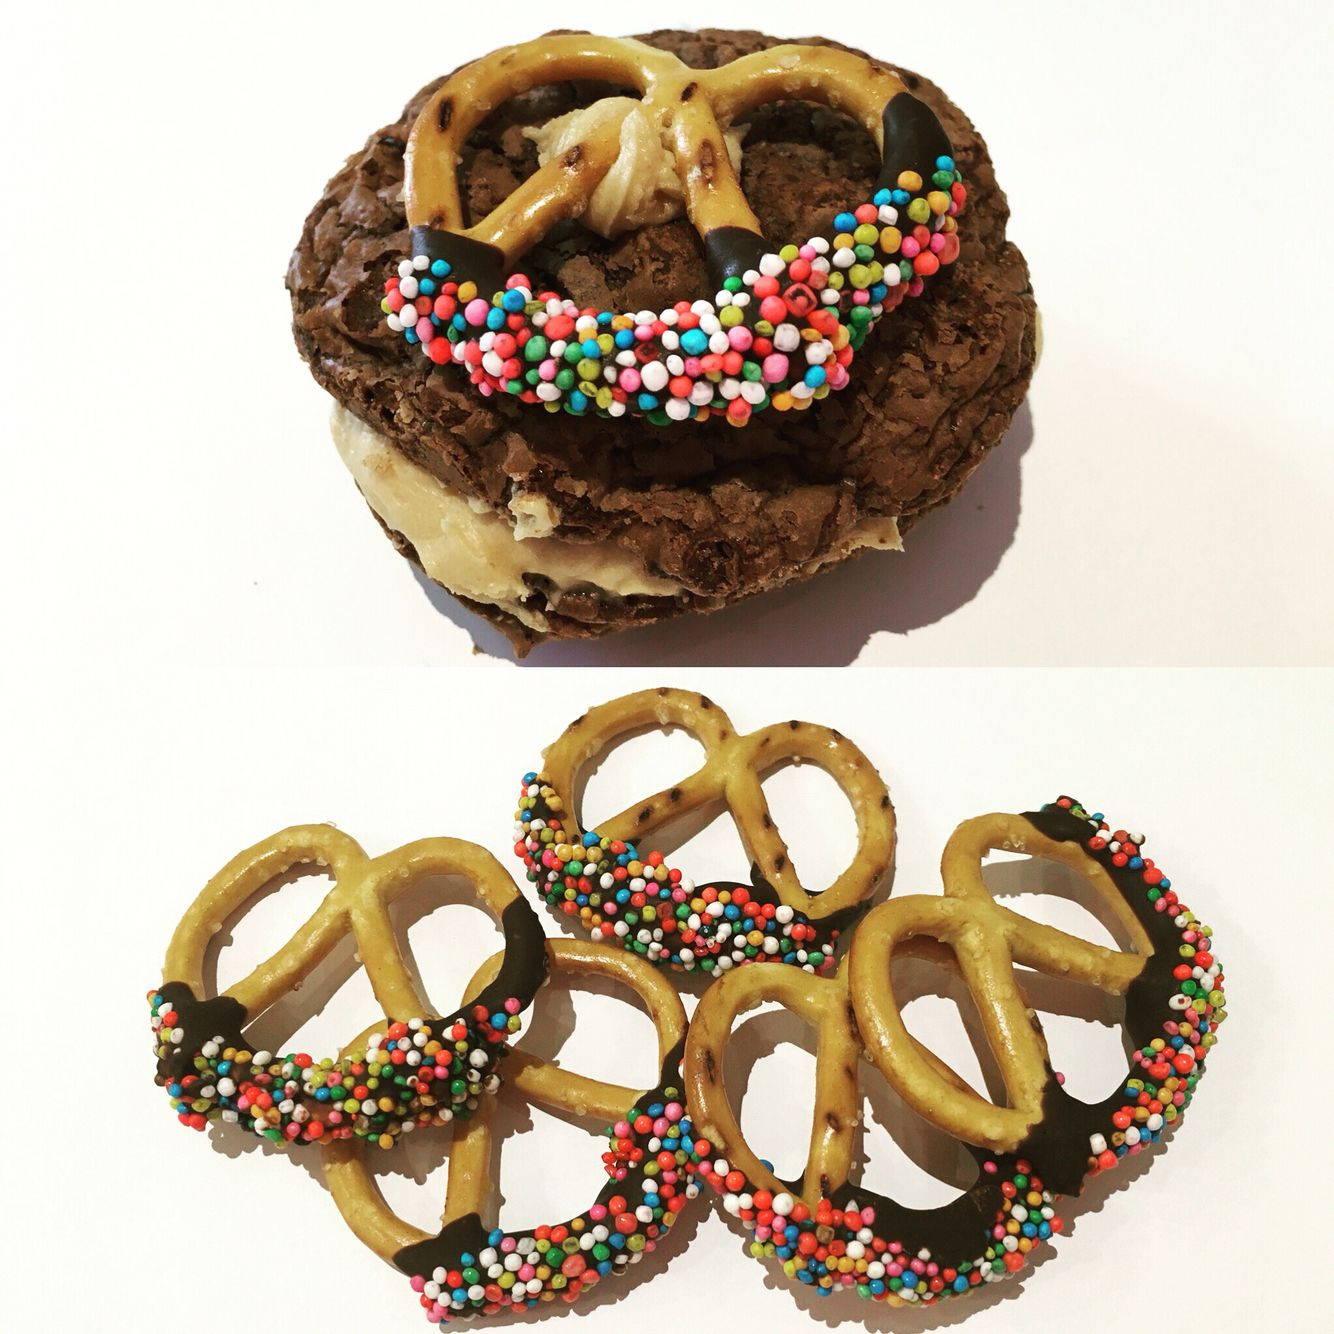 Chocolate espresso cookie sandwich with a chocolate coated pretzel and sprinkles on top....yum!